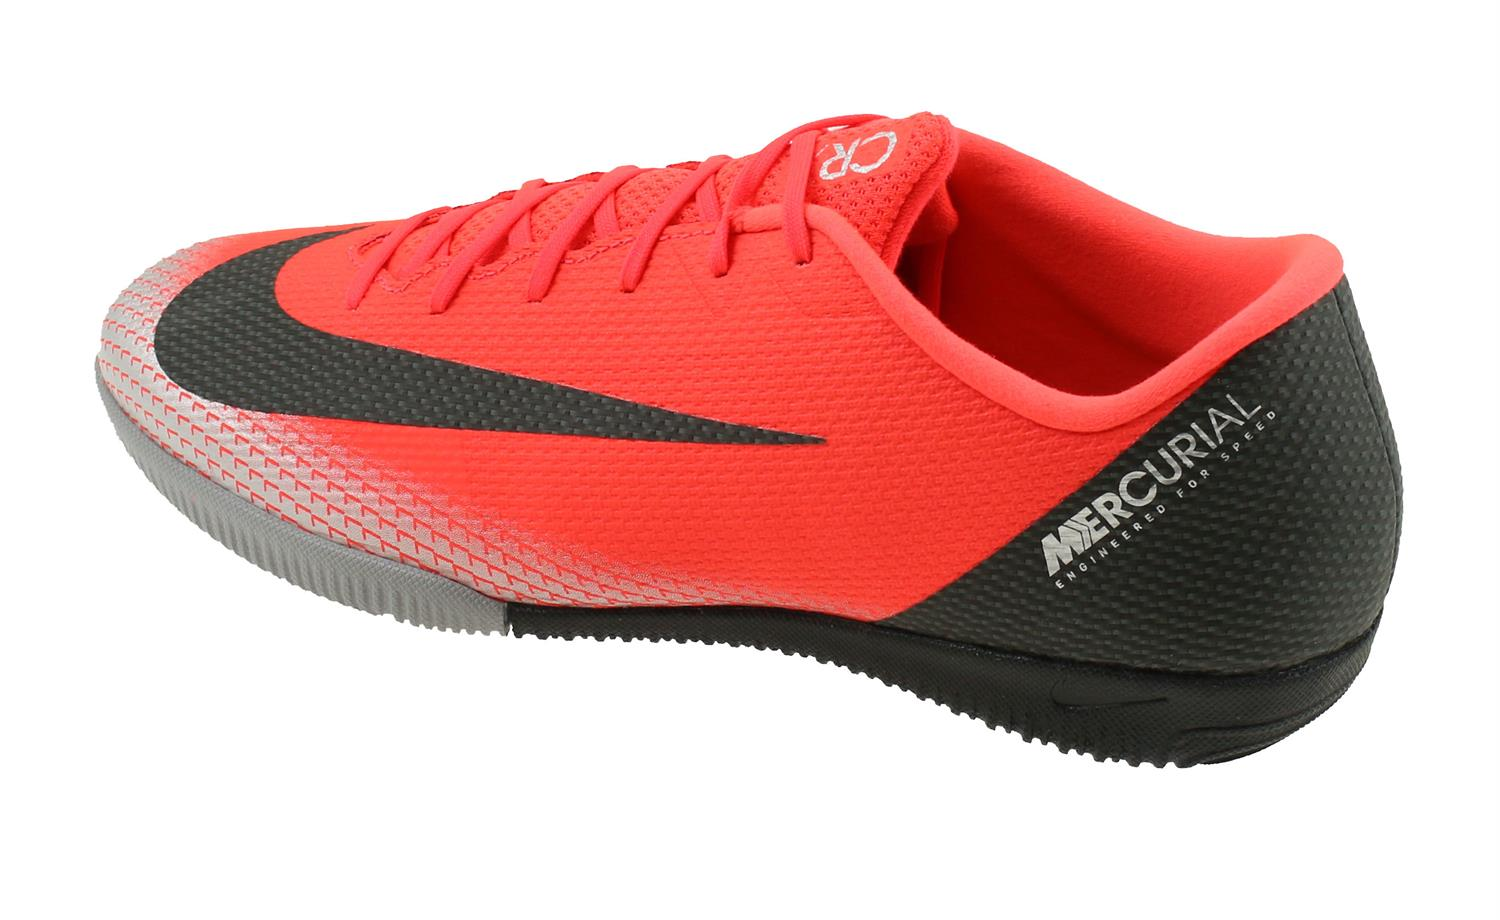 0dc6f0be93d7a nike-mercurial-vapor-xii-academy-cr7-indoor_1500x1500_77649.png